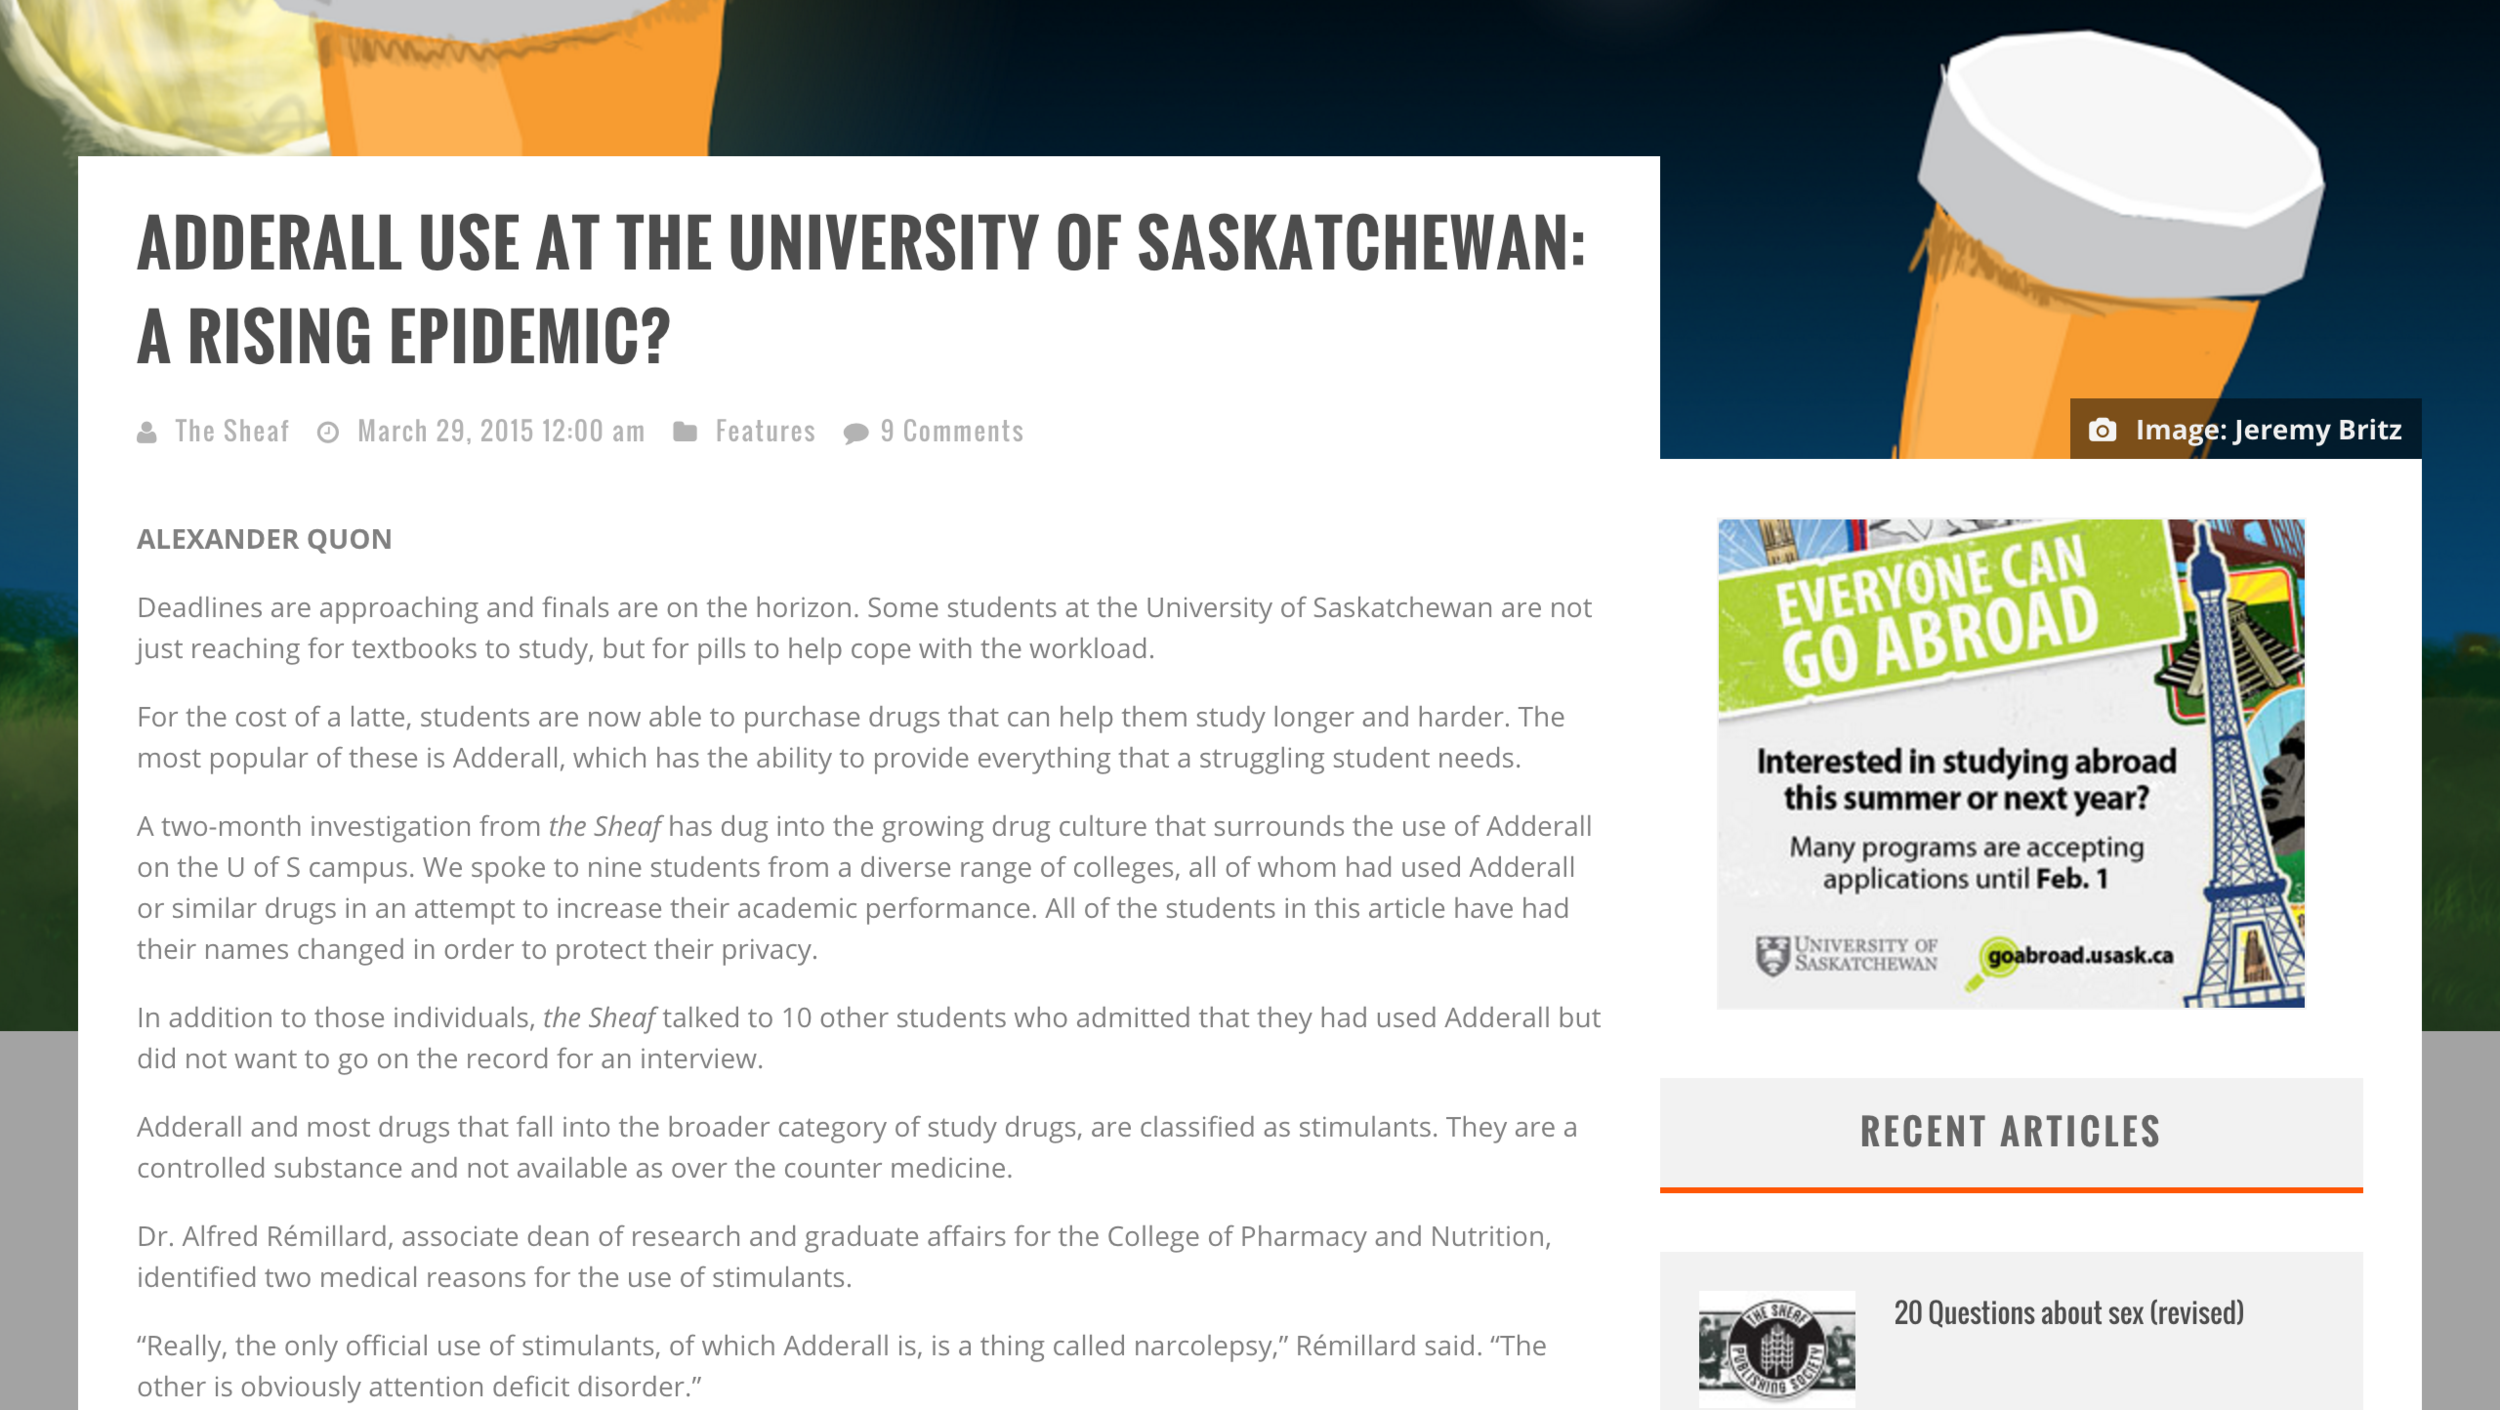 Adderall use at the University of Saskatchewan: A rising epidemic?